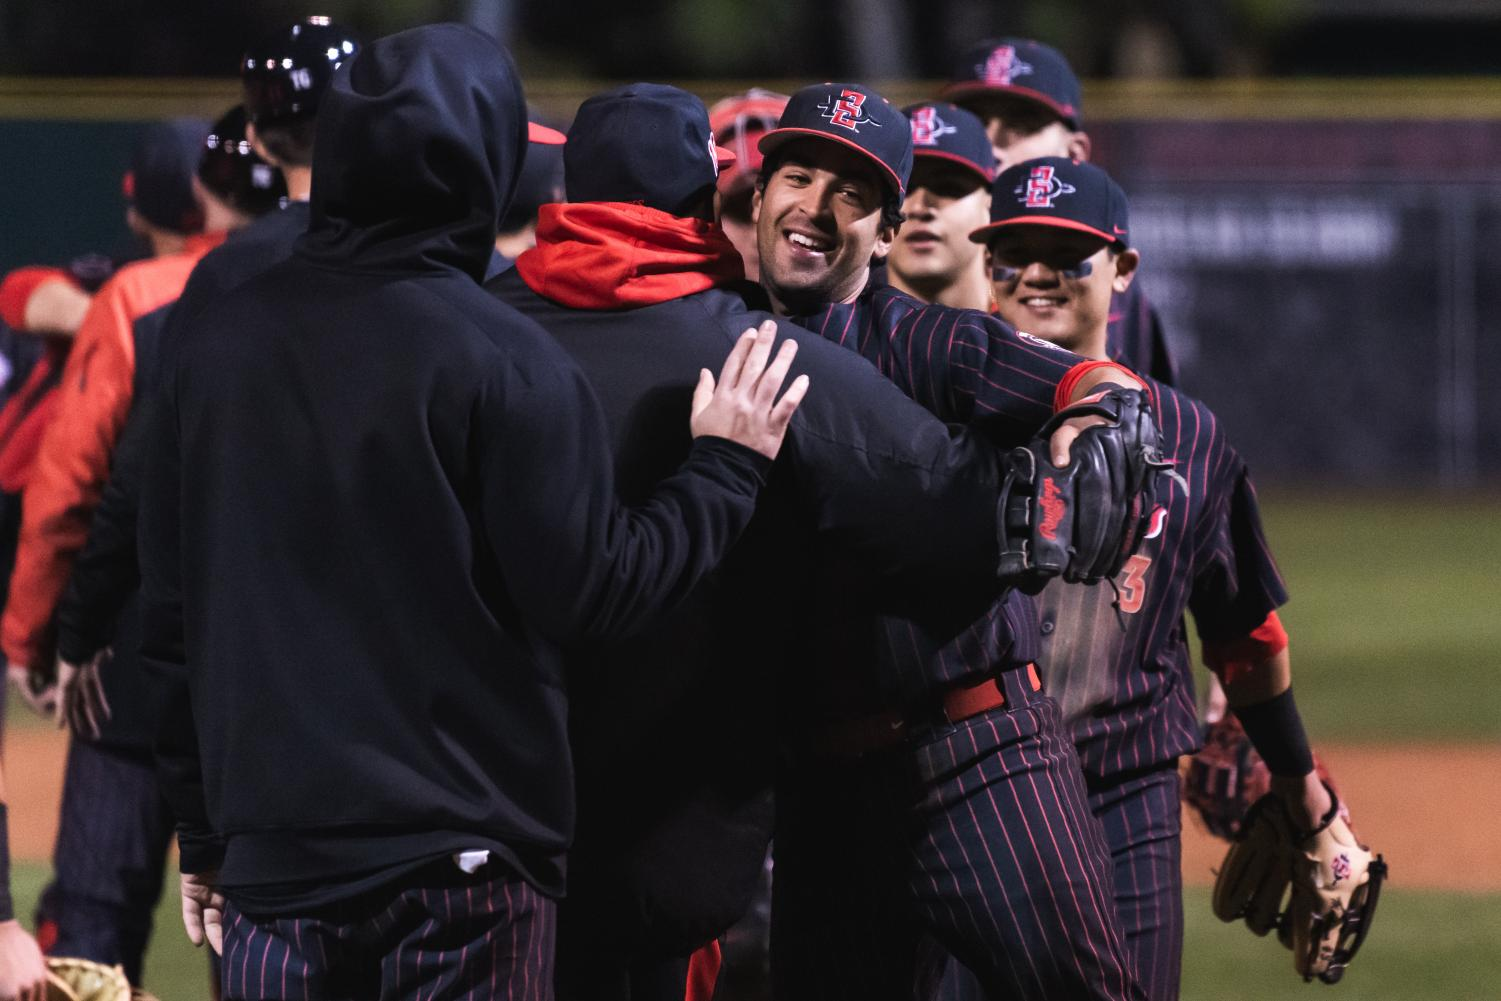 Senior shortstop Angelo Armenta celebrates after clinching a victory during the Aztecs' series against Nevada from March 8-10 at Tony Gwynn Stadium.